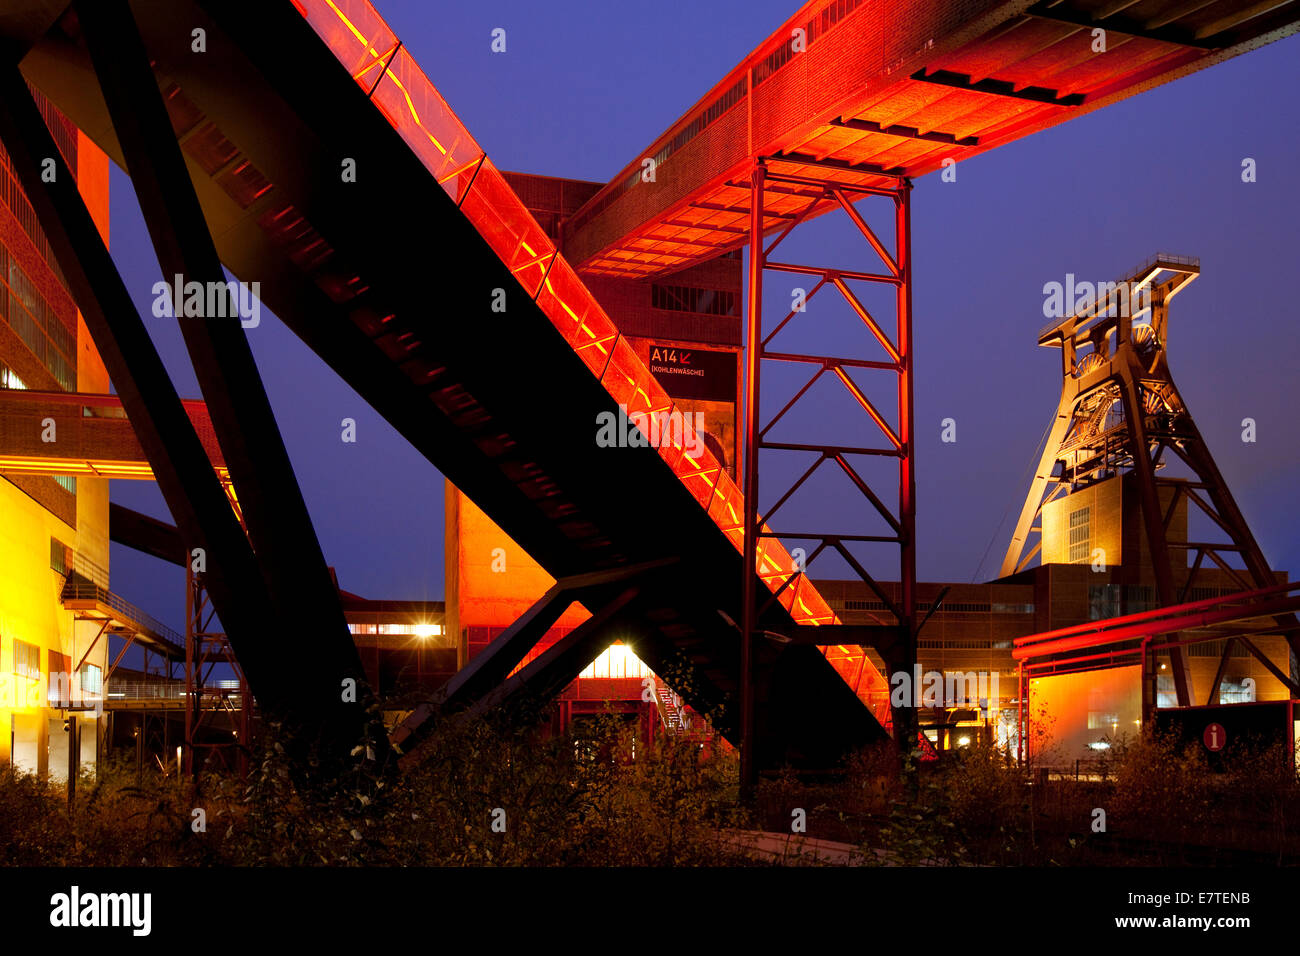 Illuminated gangway to the Ruhr Museum at the Zeche Zollverein Coal Mine Shaft XII with the headframe, Essen, Ruhr - Stock Image